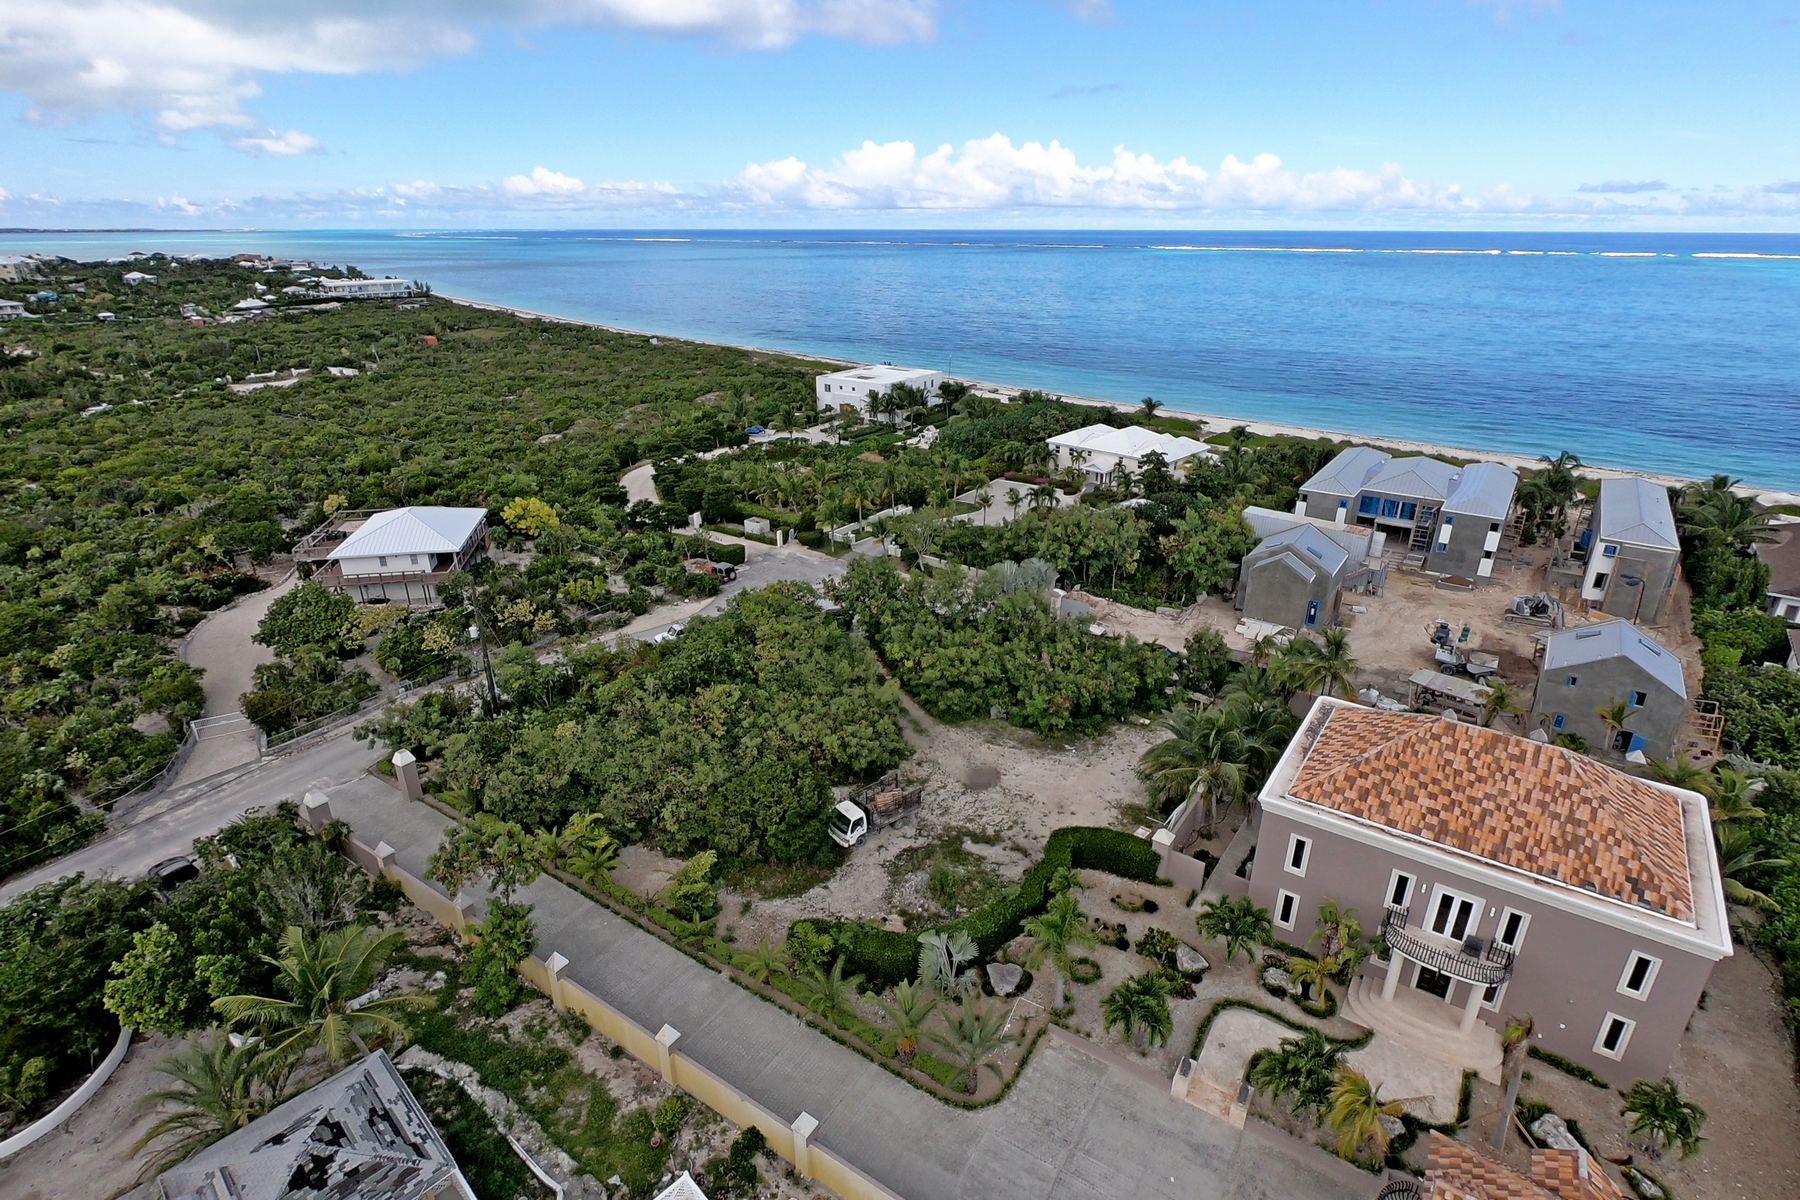 Land for Sale at Vacant Land Richmond Hill Gardenview Richmond Hill, Providenciales TCI BWI Turks And Caicos Islands